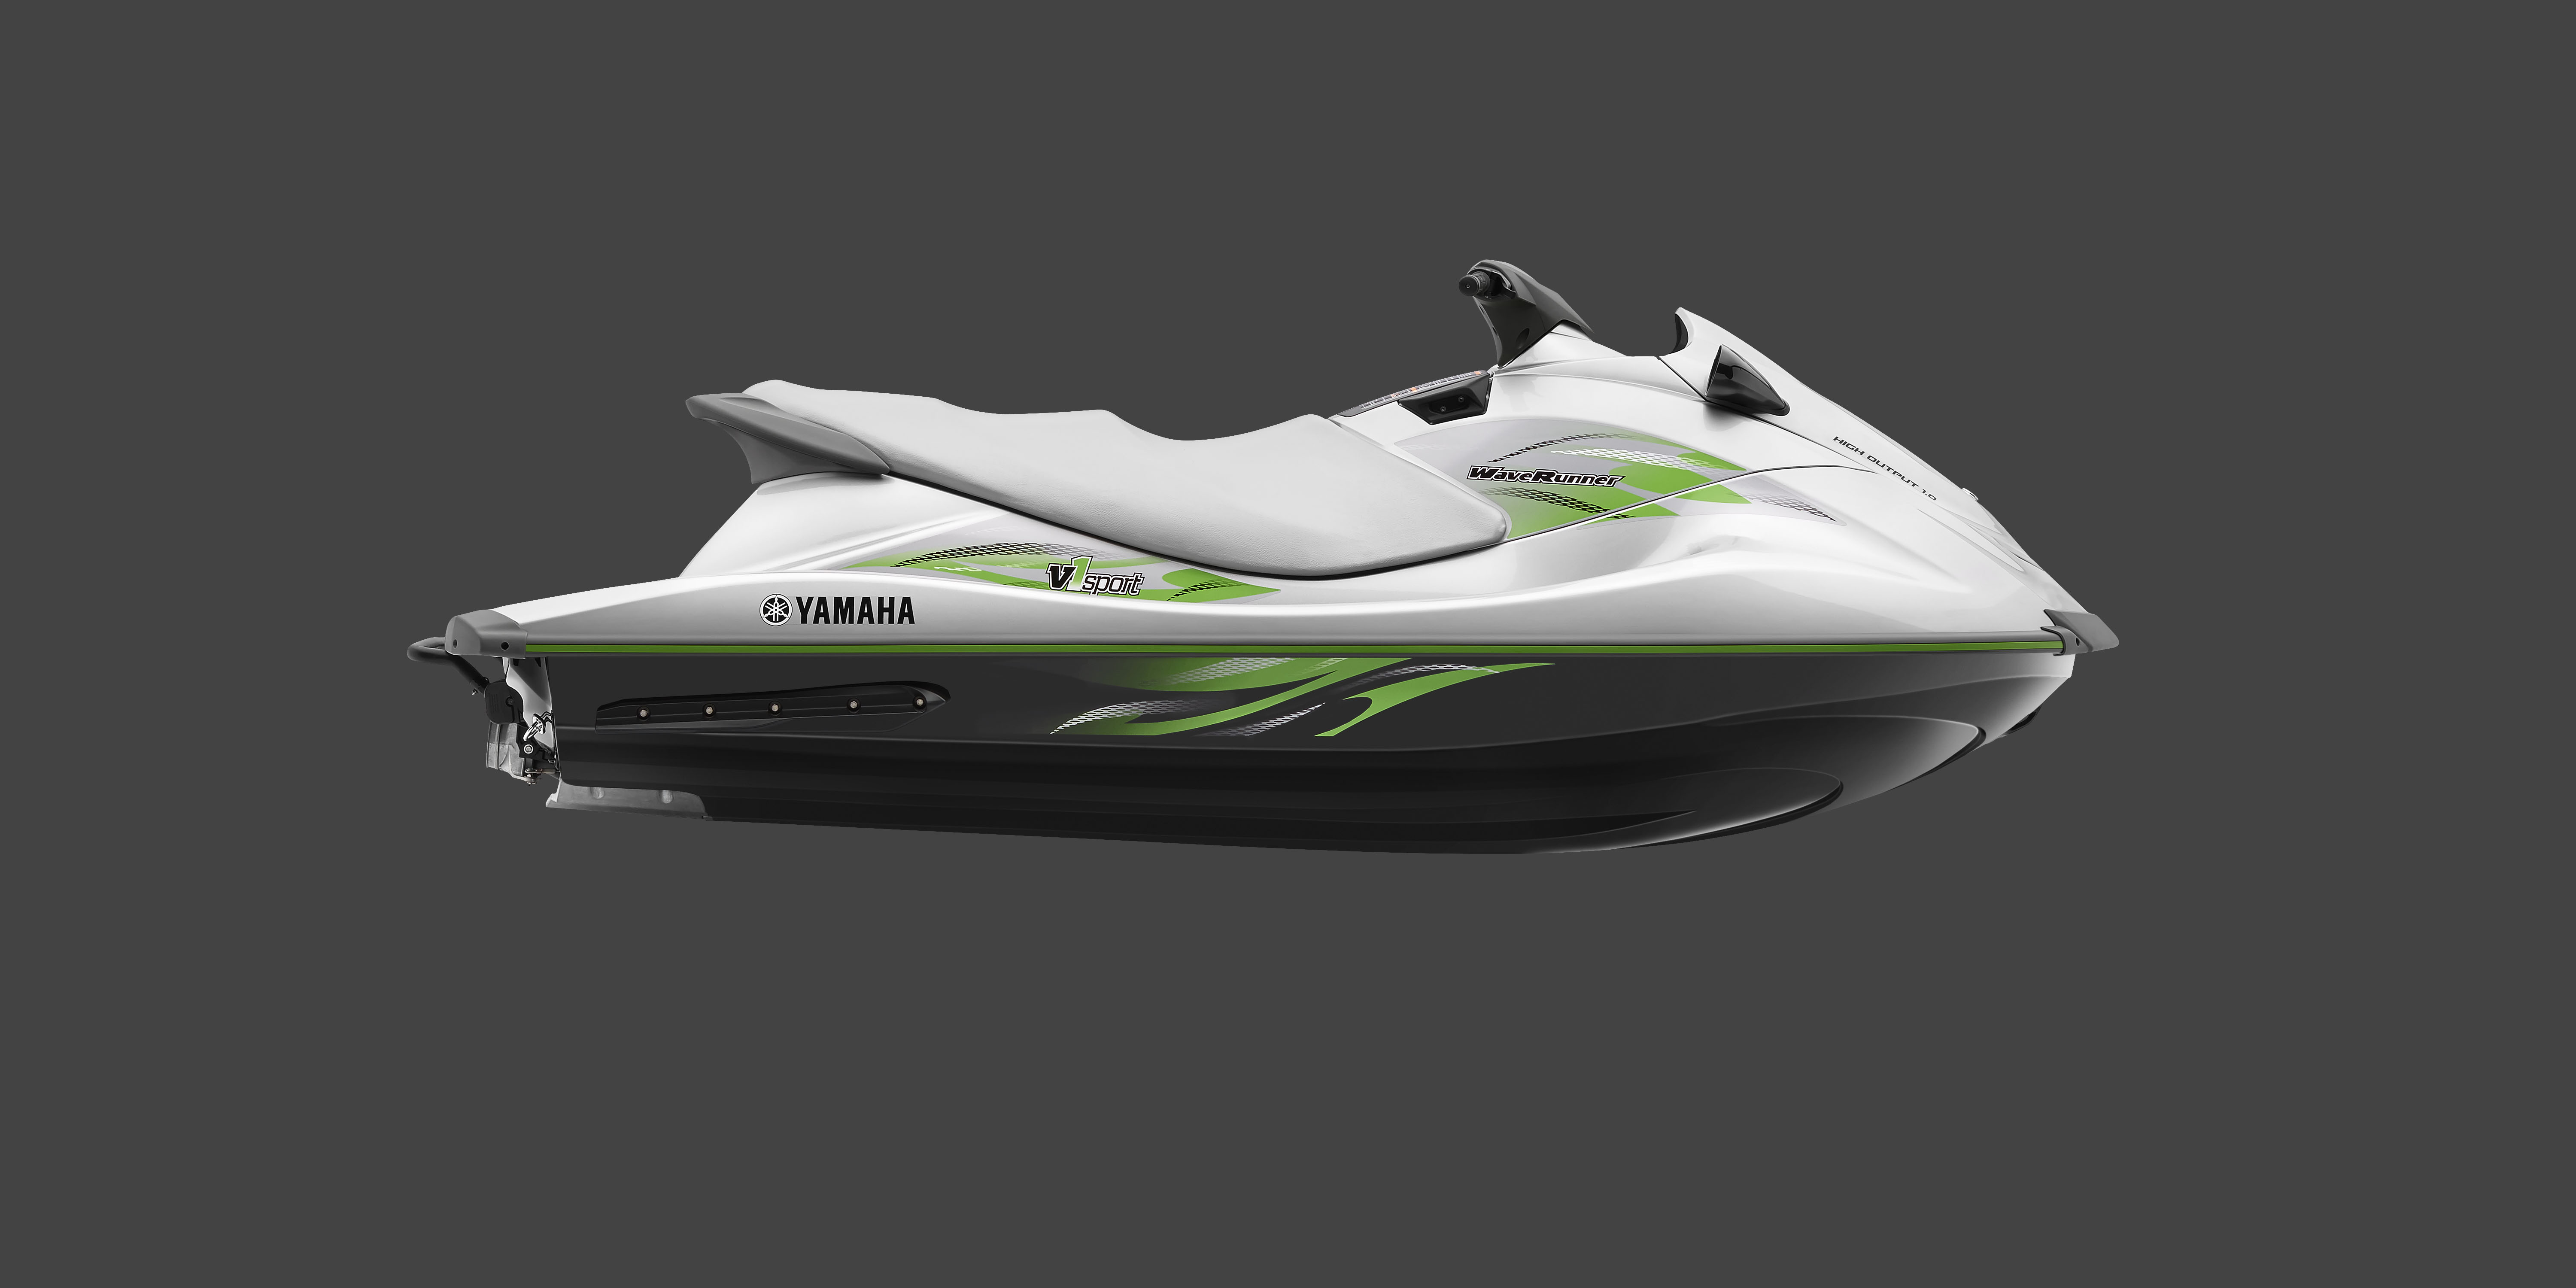 Yamaha Vx Deluxe >> Yamaha Introduces its 2016 WaveRunners® with All-New VX ...